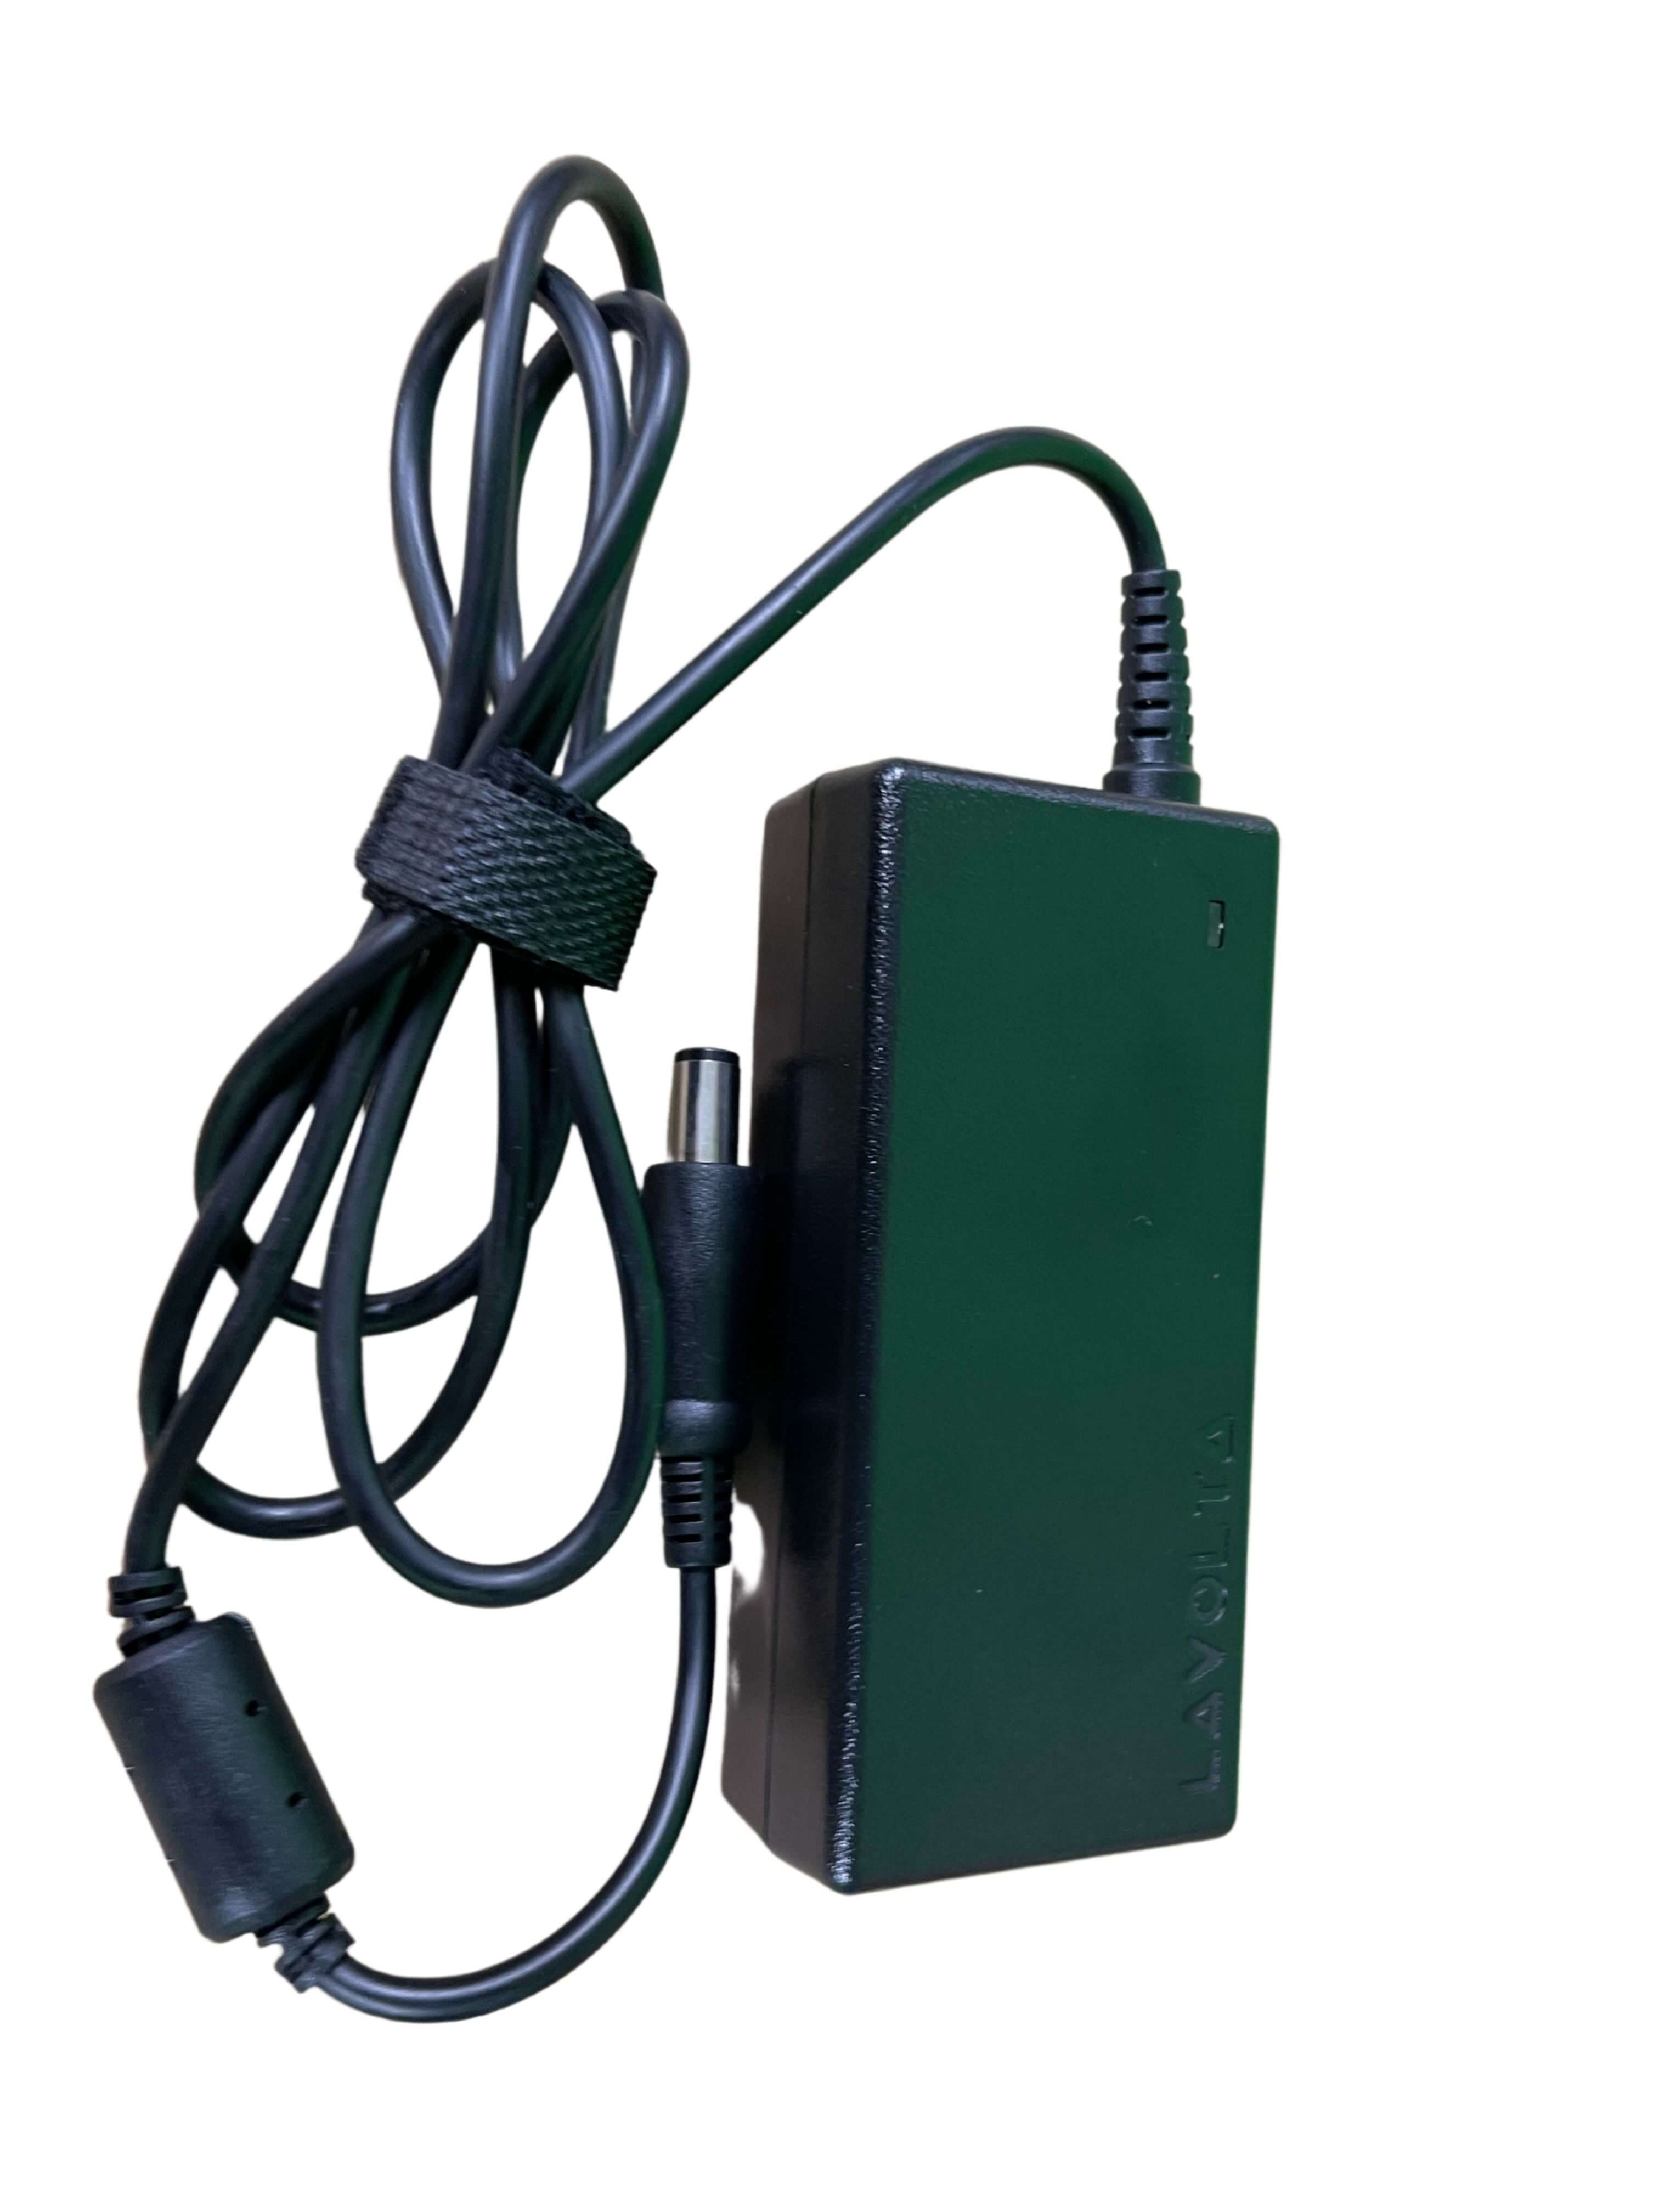 Dell Charger for laptop-large tip